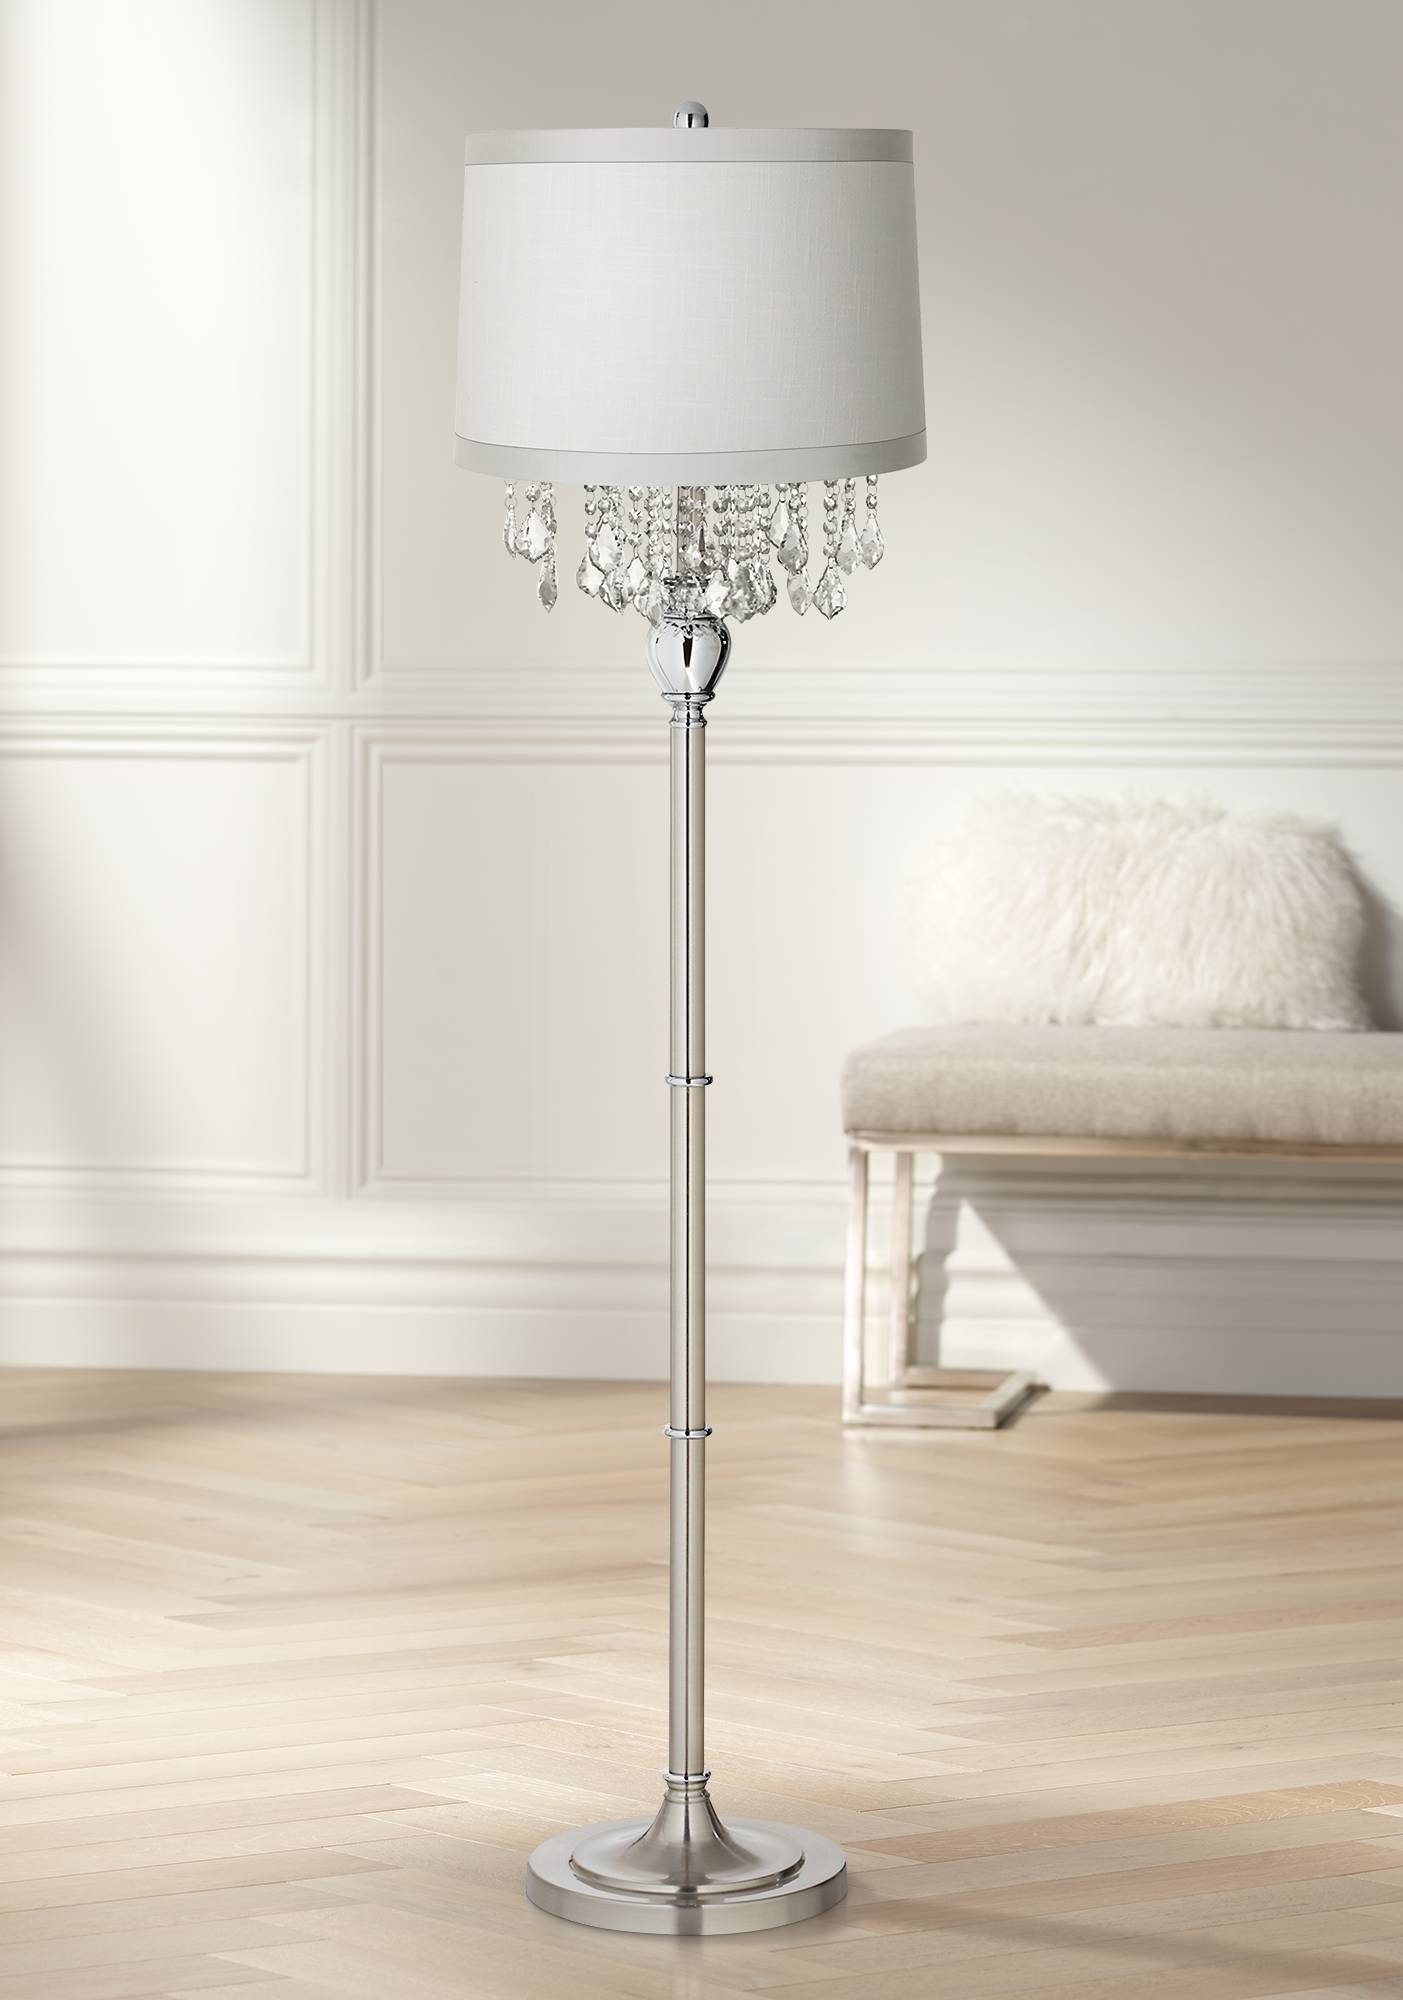 Details about traditional chandelier floor lamp satin steel chrome crystal for living room